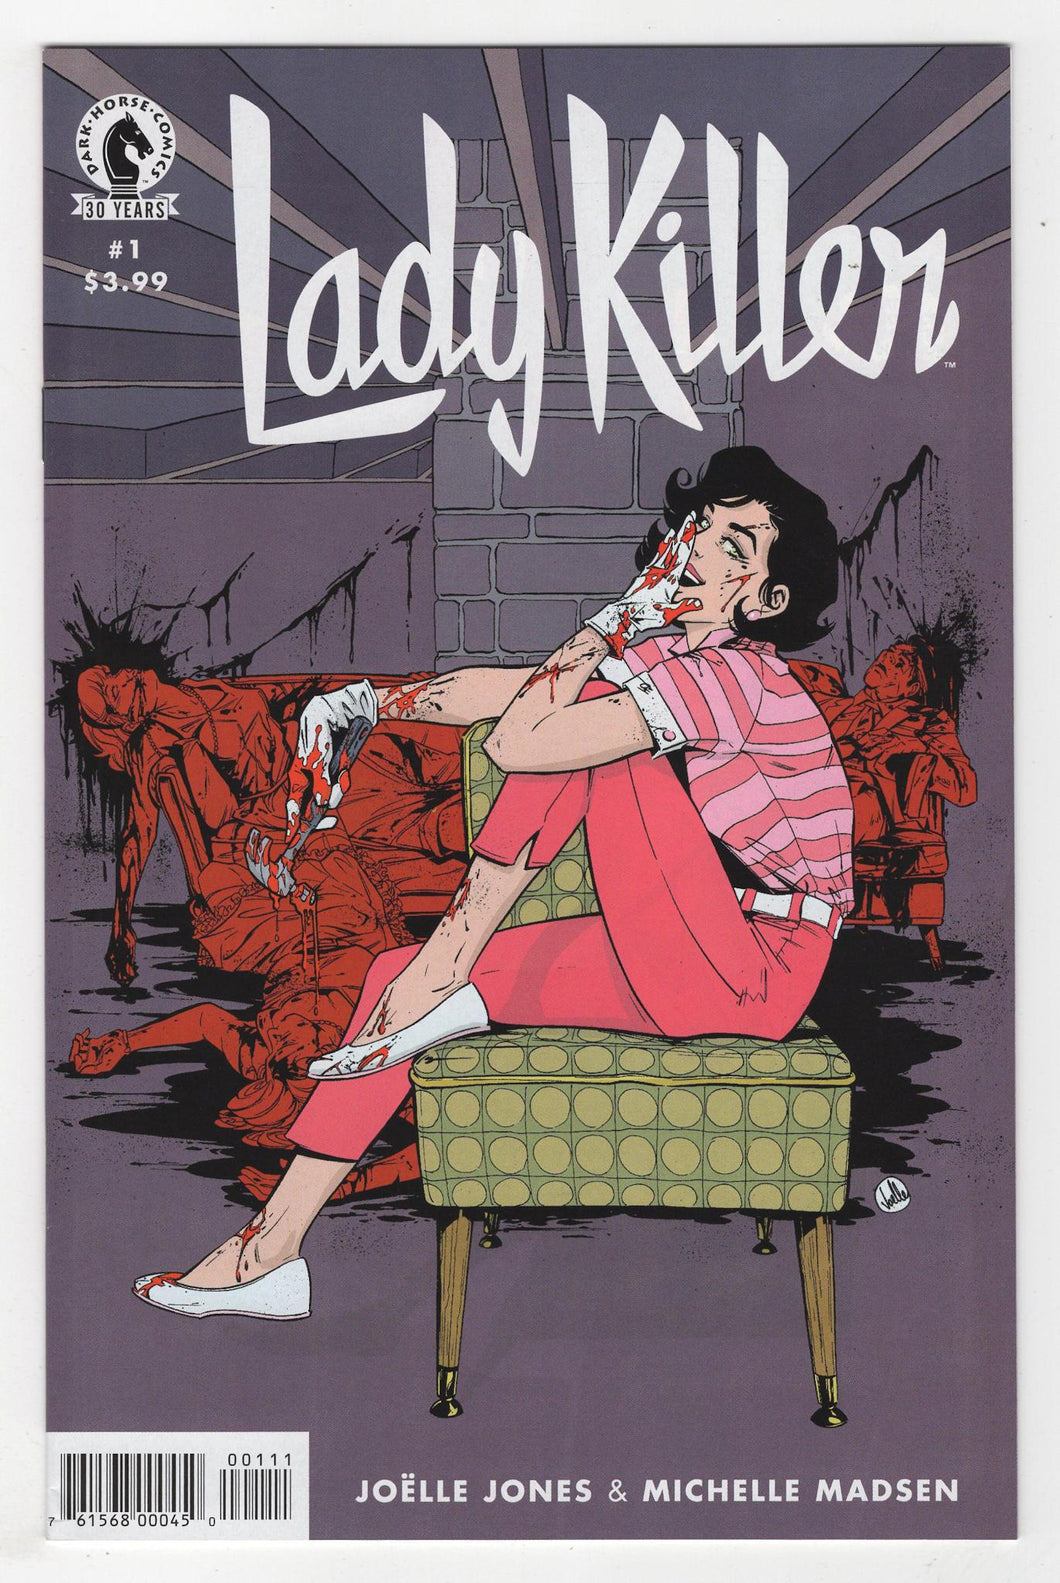 Lady Killer 2 #1 Cover Front